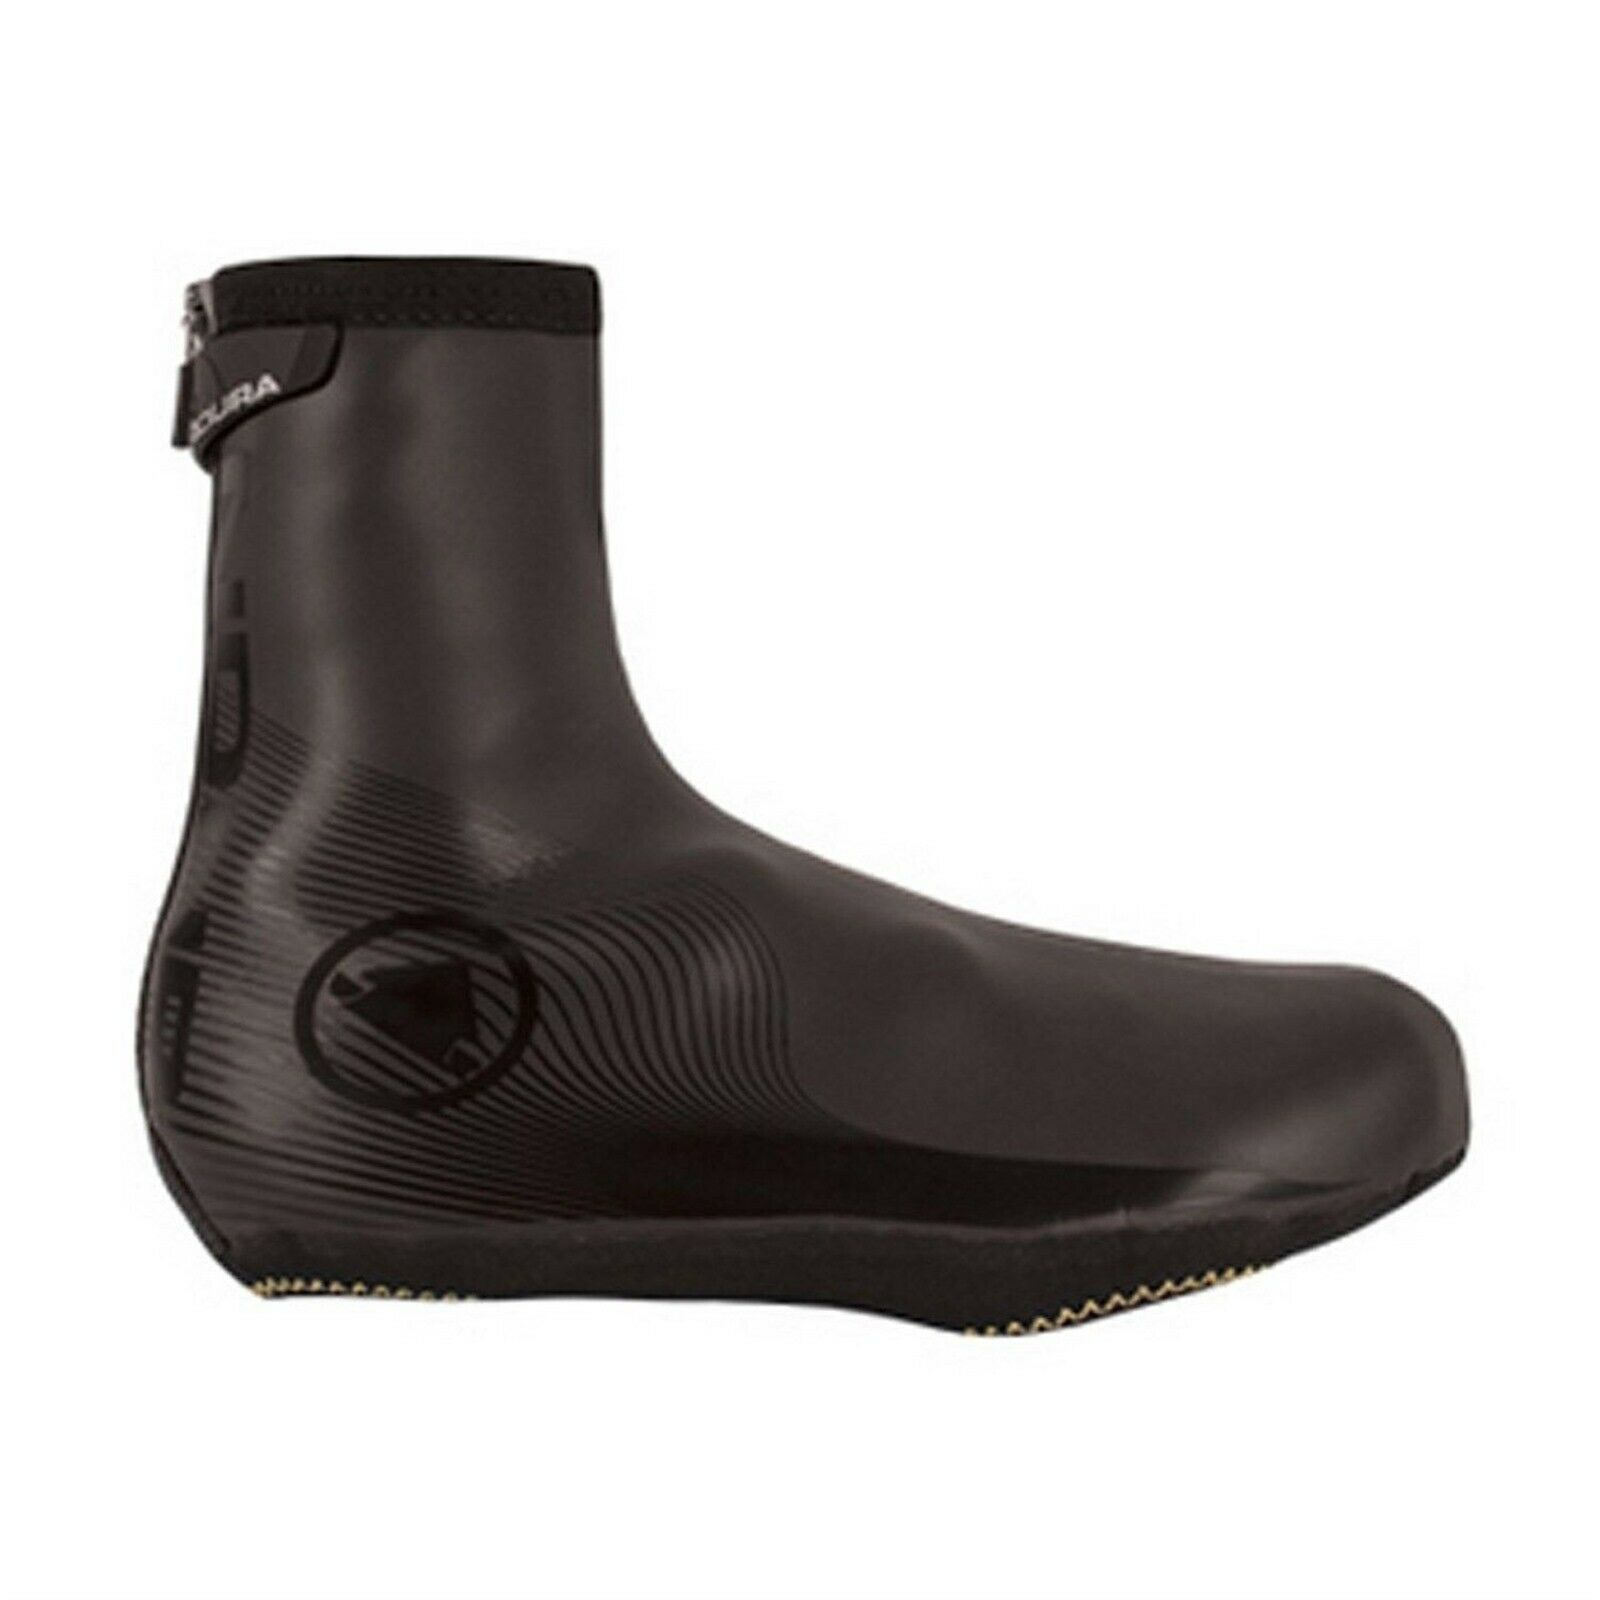 Booties by Endura Silver Road Cycling Overshoe